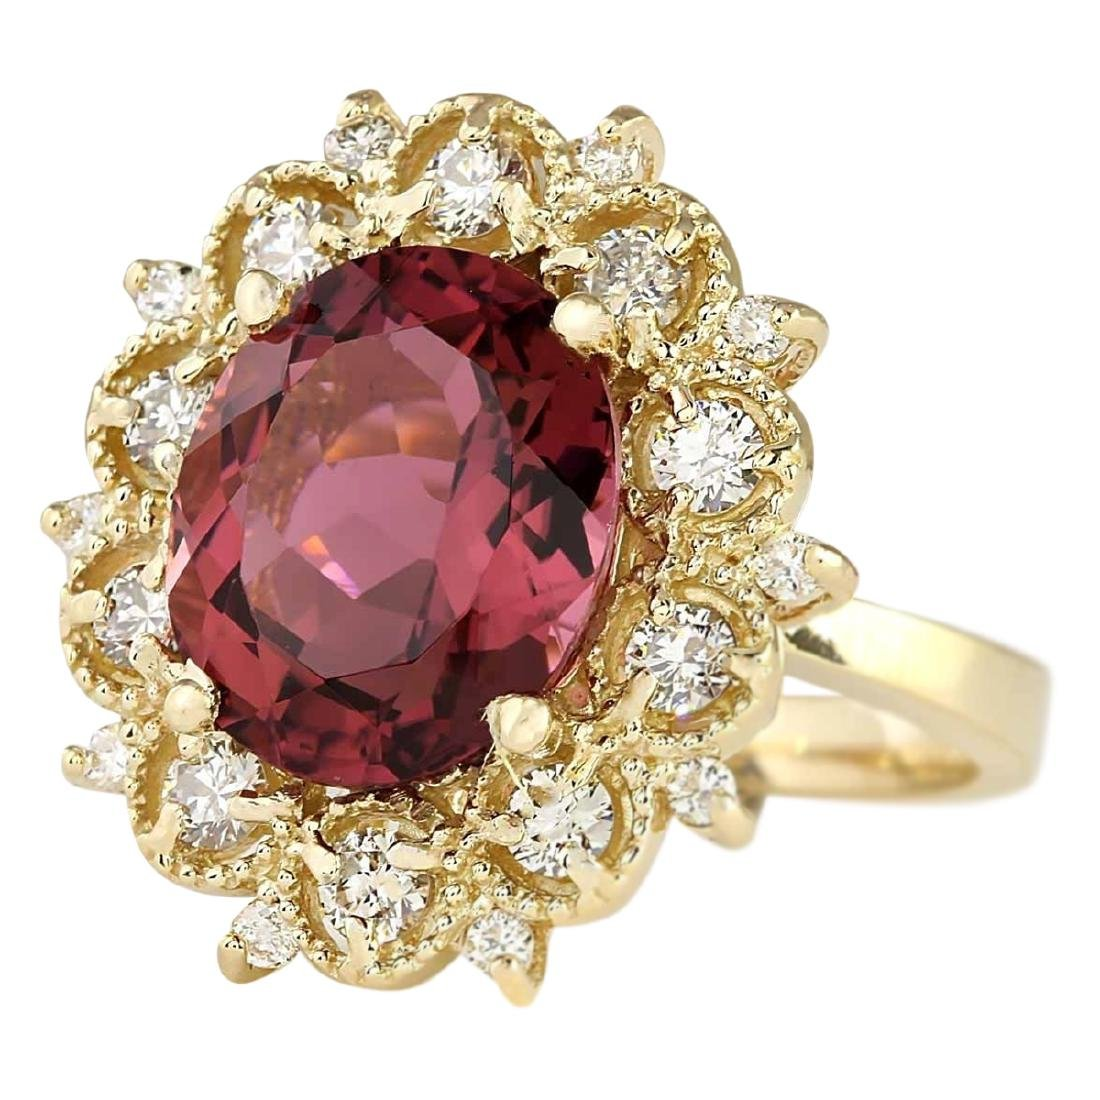 6.60 CTW Natural Pink Tourmaline And Diamond Ring In18K - 2